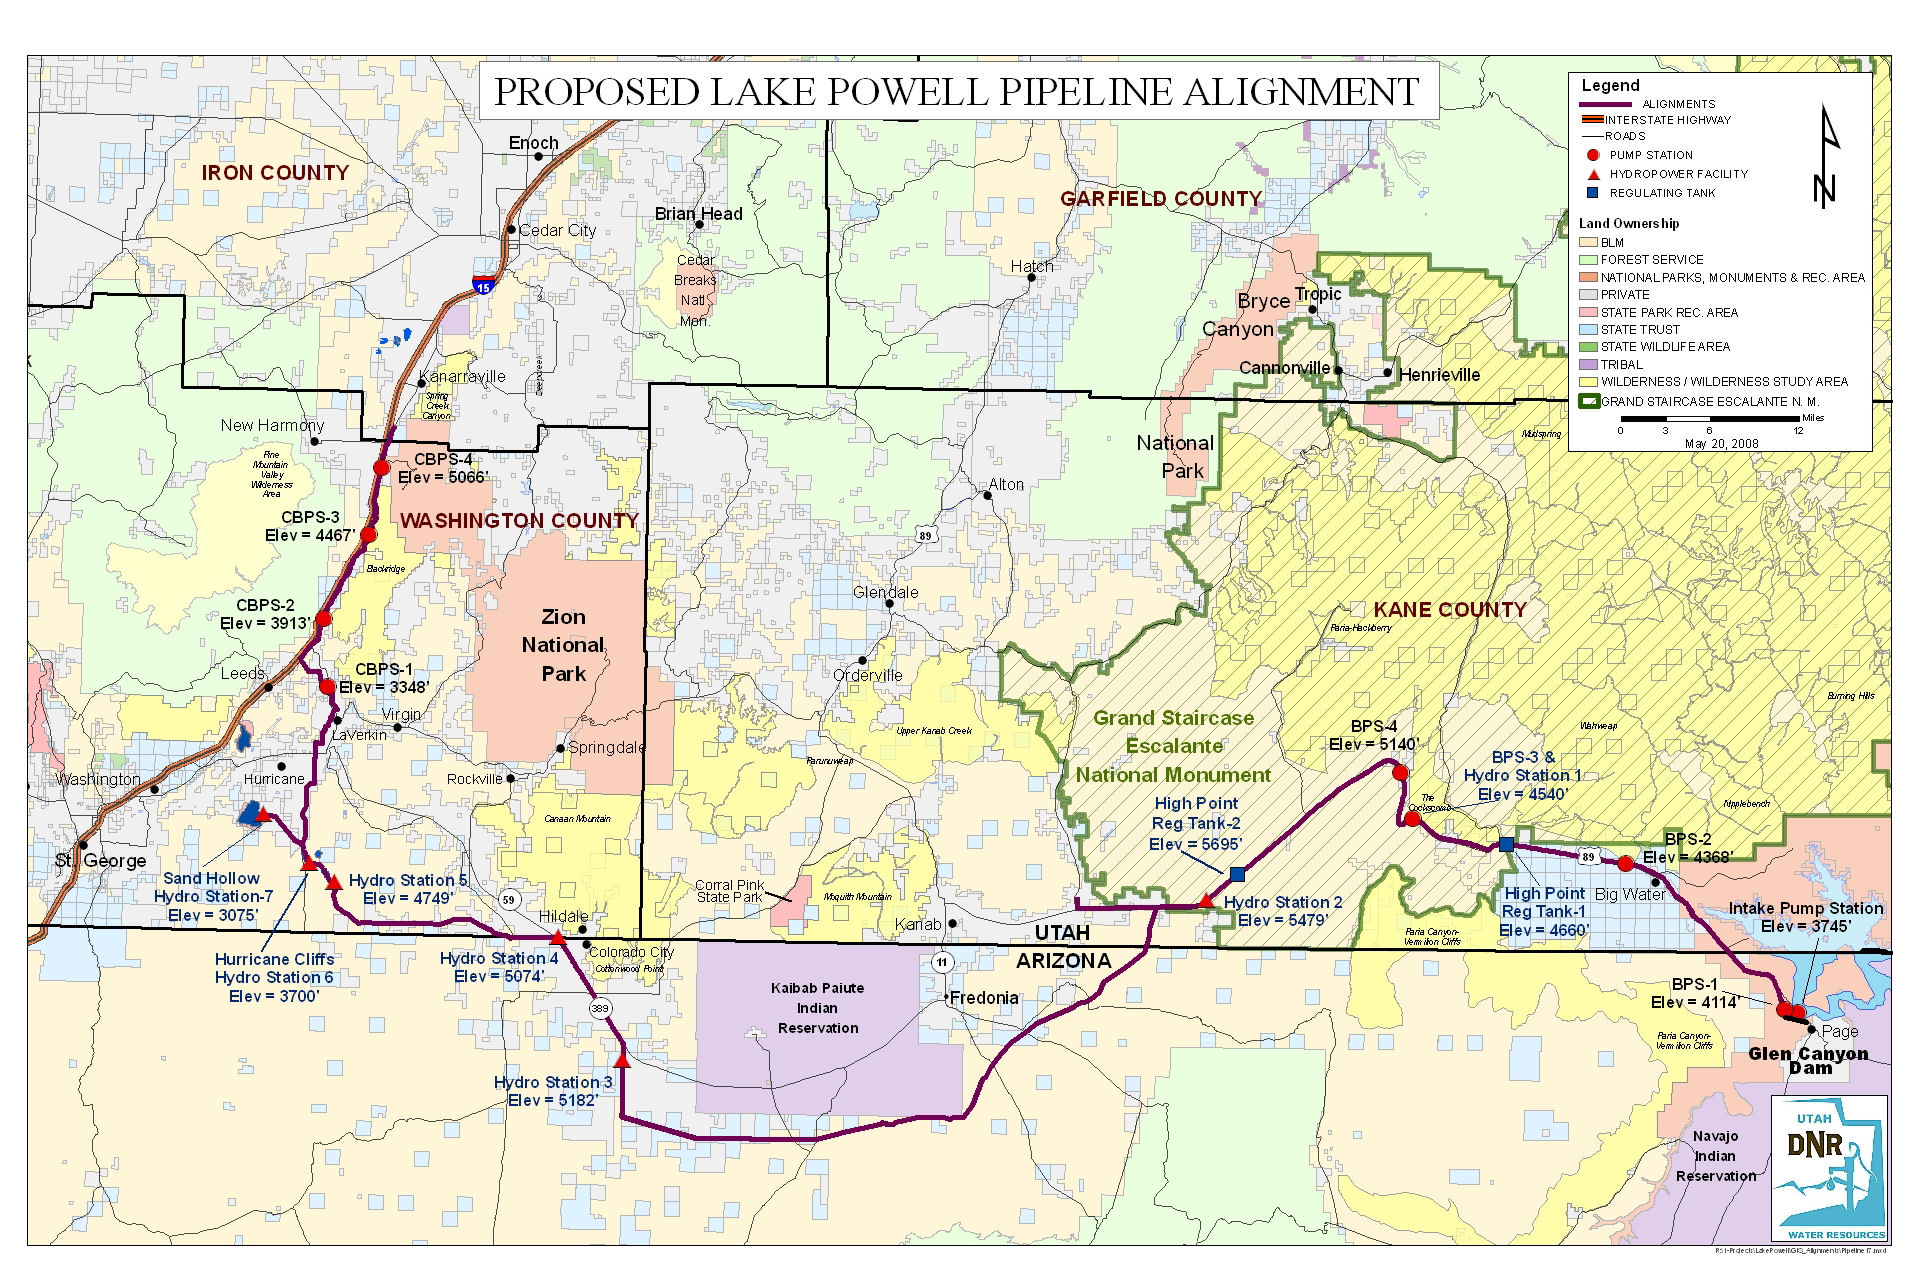 this map shows the route of the proposed pipeline as well as the placementof hydroelectric stations and pumping stations. lake powell pipeline could quadruple water costs u economists